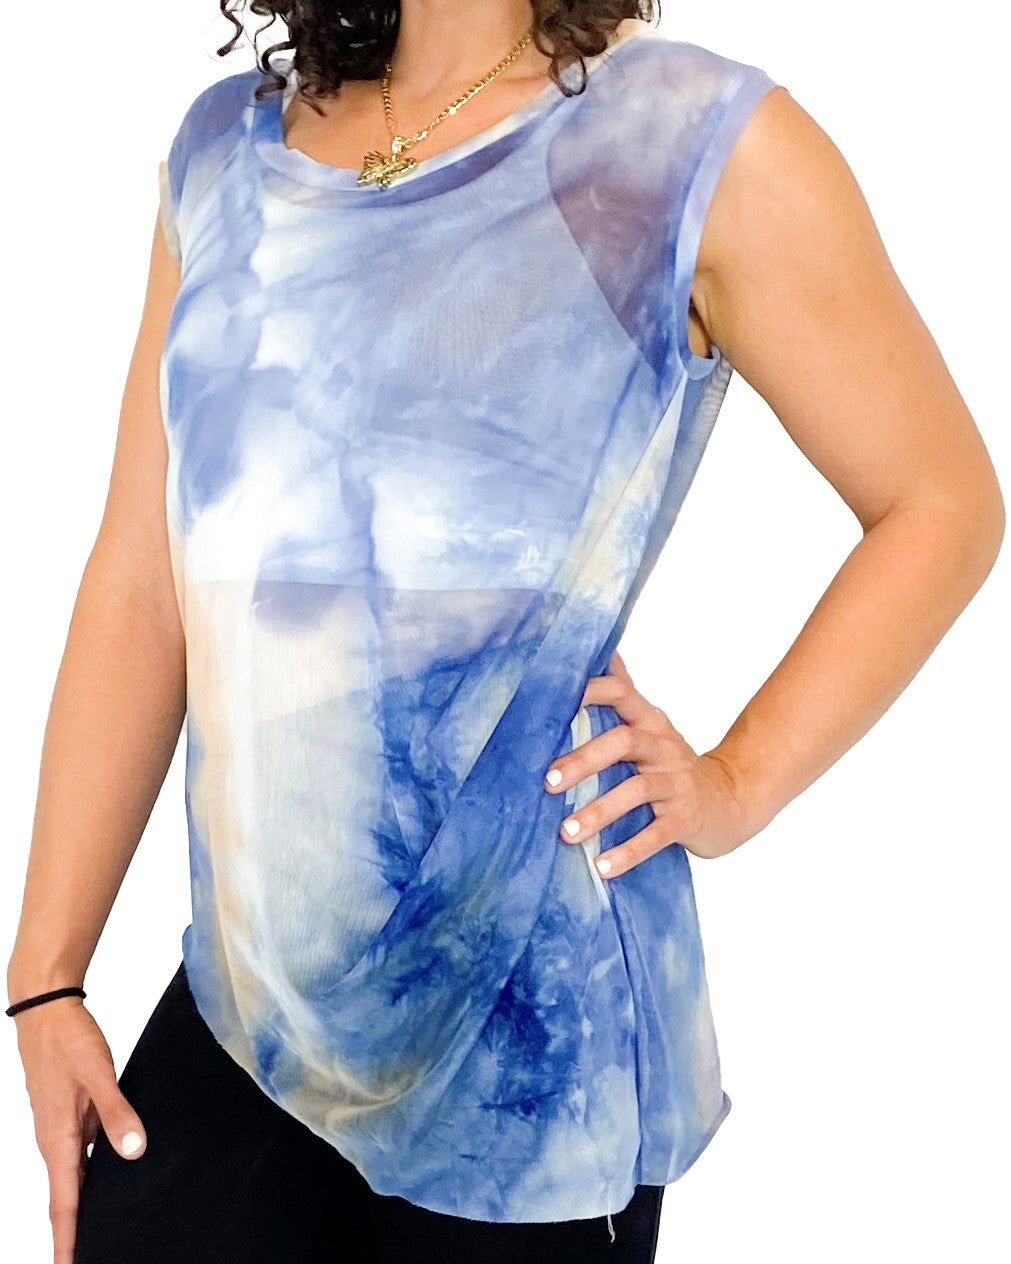 Blue Water Color Dreams Sleeveless Top - Style Adix